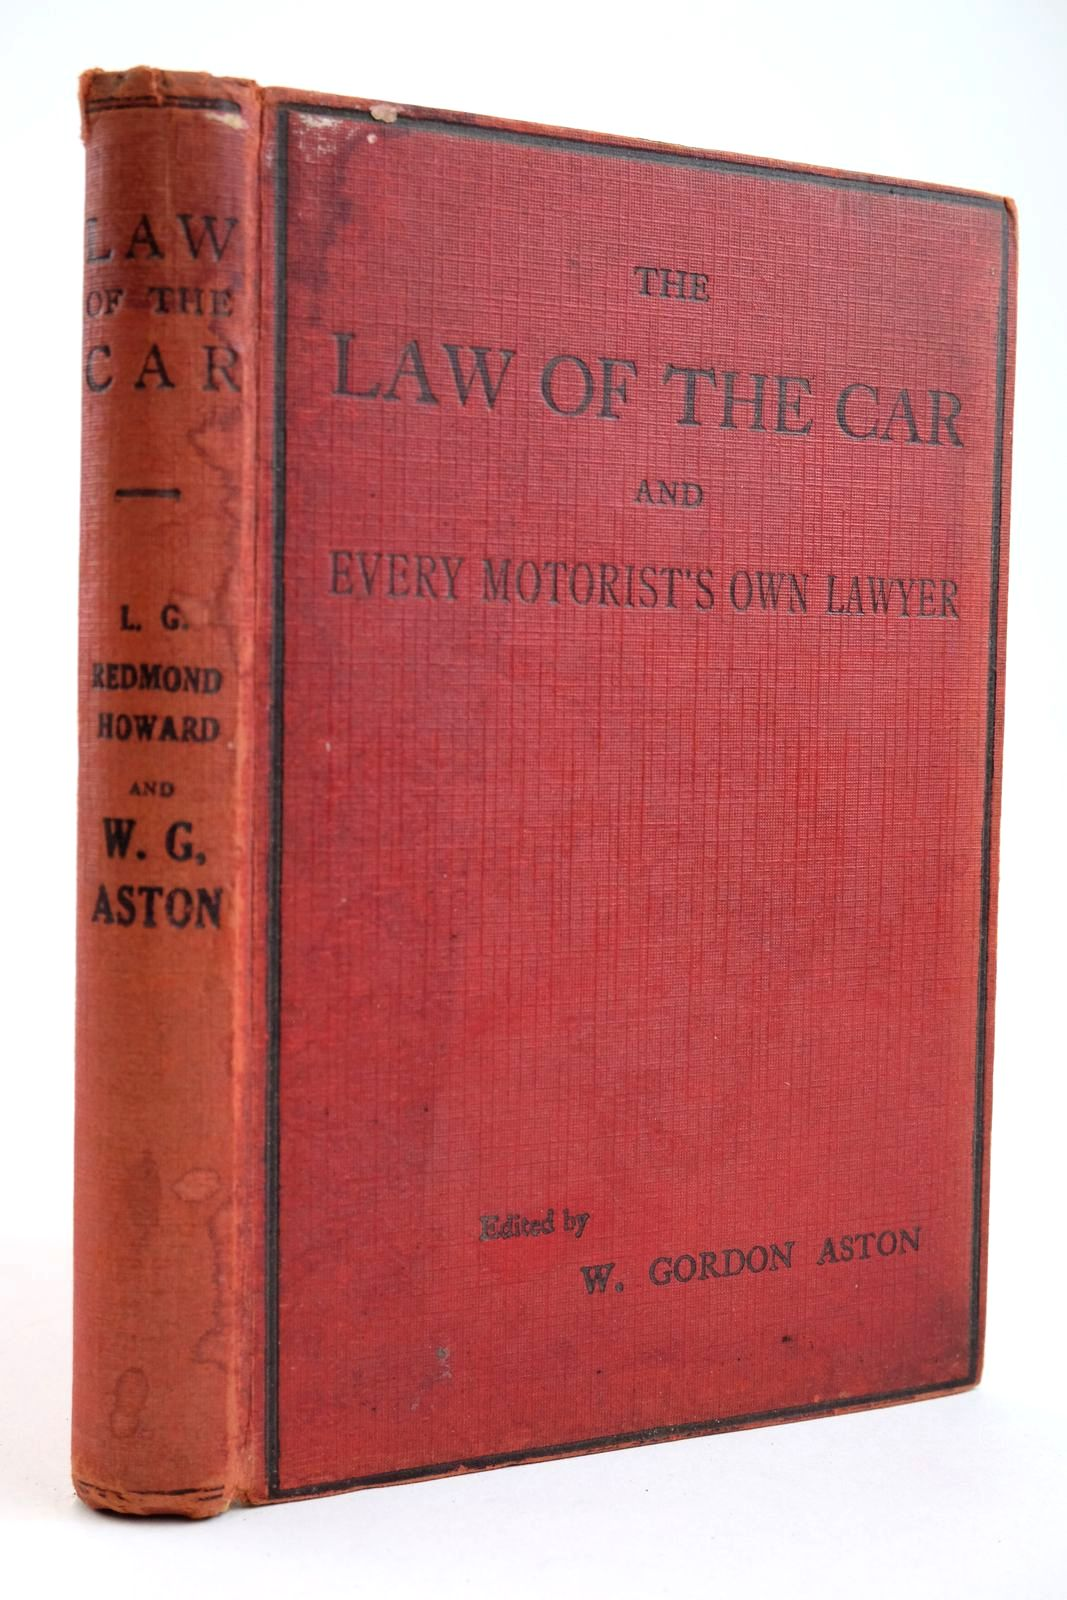 Photo of THE LAW OF THE CAR AND EVERY MOTORIST'S OWN LAWYER- Stock Number: 2133949